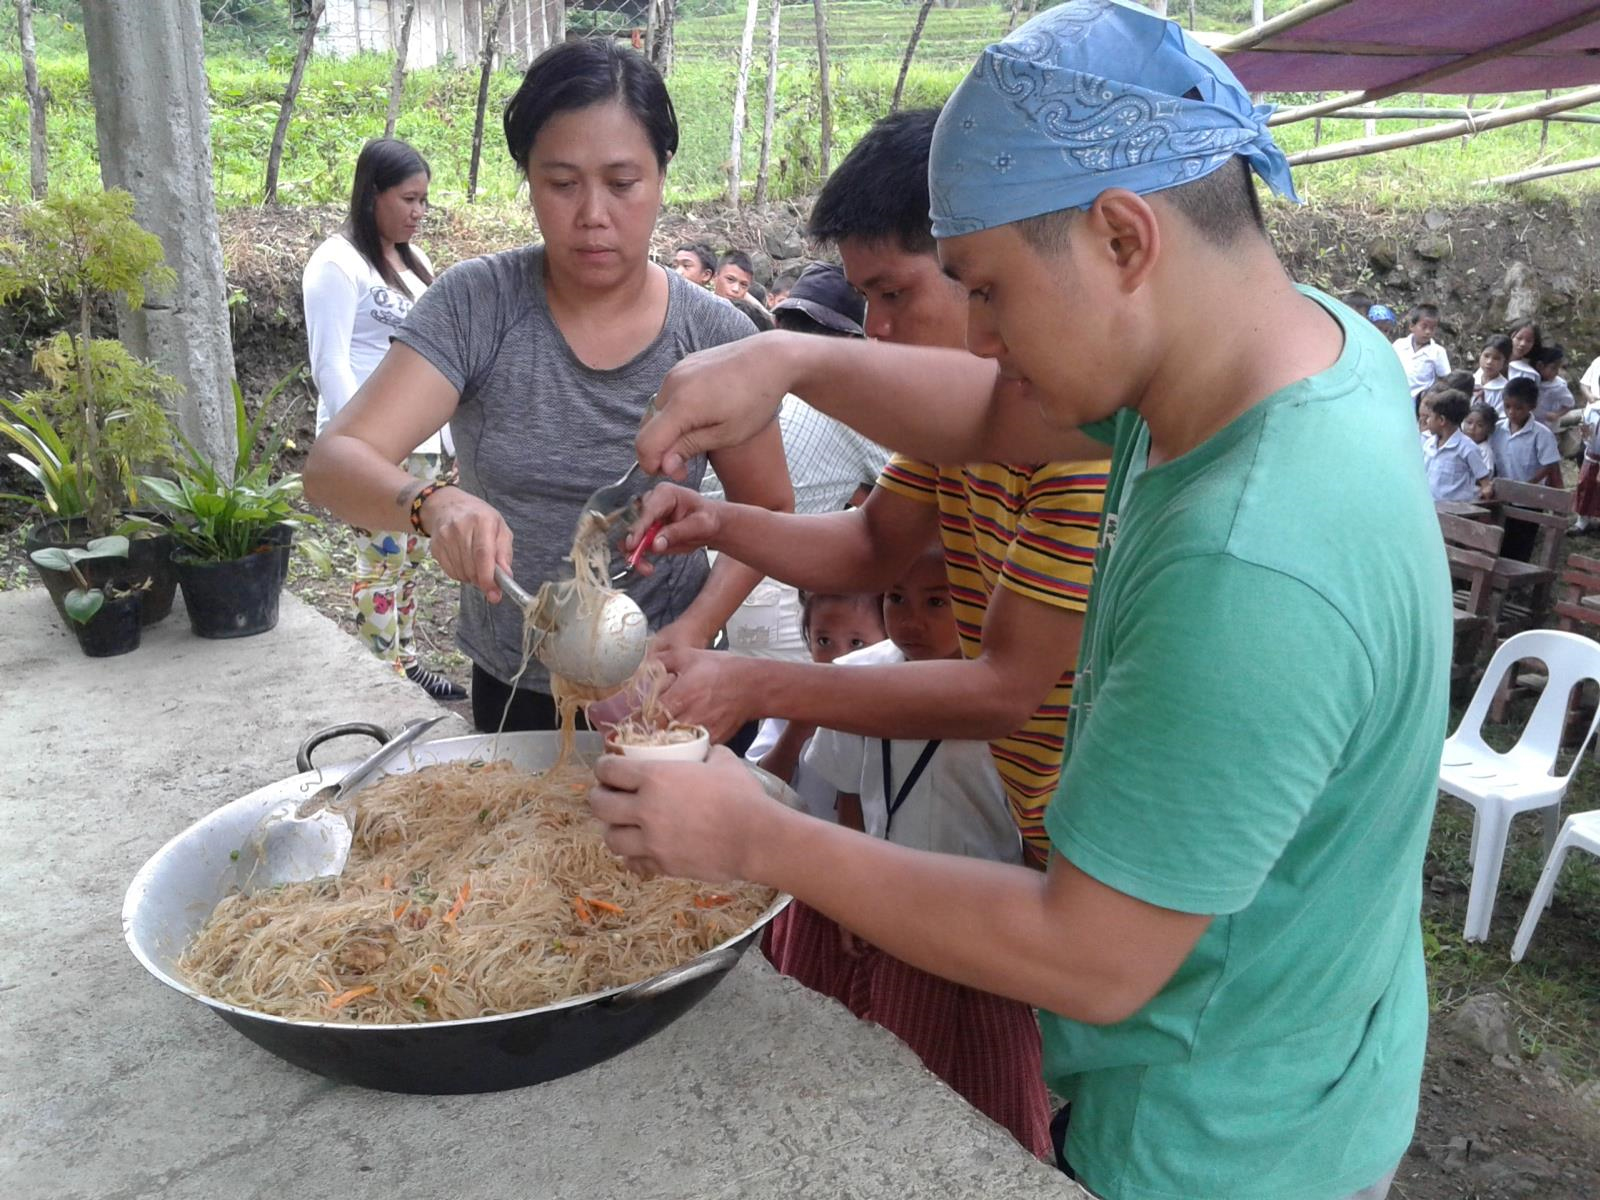 Donate to the Missionaries of the Sacred Heart and help feed families in the Philippines.